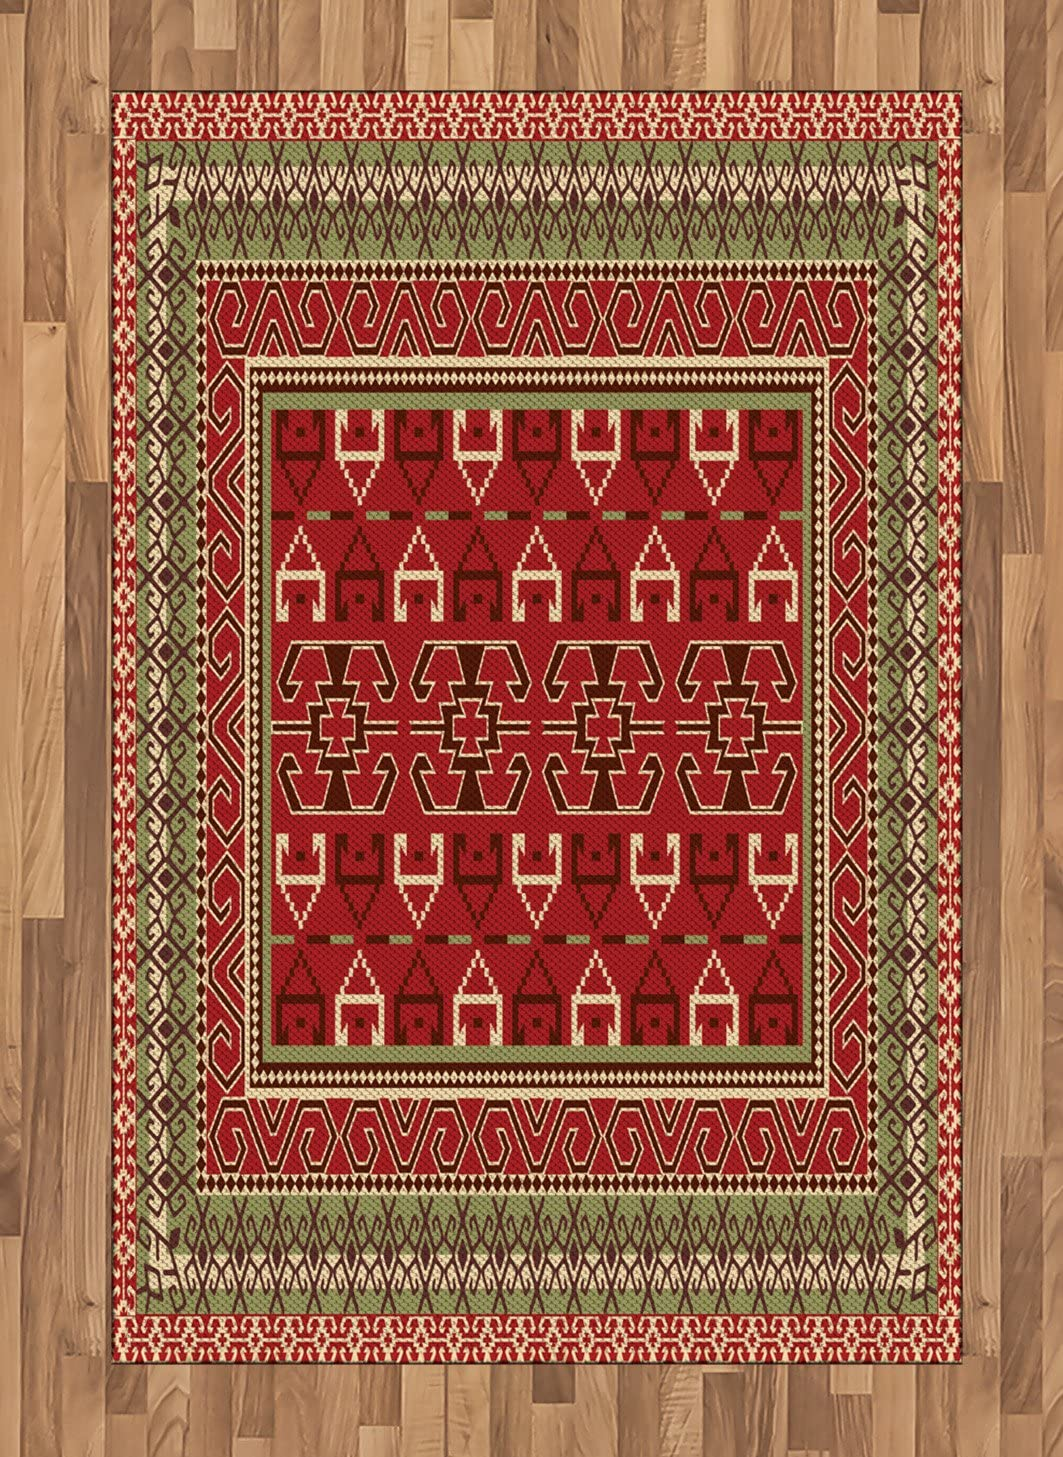 Ambesonne Turkish Pattern Area Rug, Rectangular Frames and Abstract Shapes with Ottoman Origins, Flat Woven Accent Rug for Living Room Bedroom Dining Room, 4' X 5.7', Ruby Pistachio Green Brown